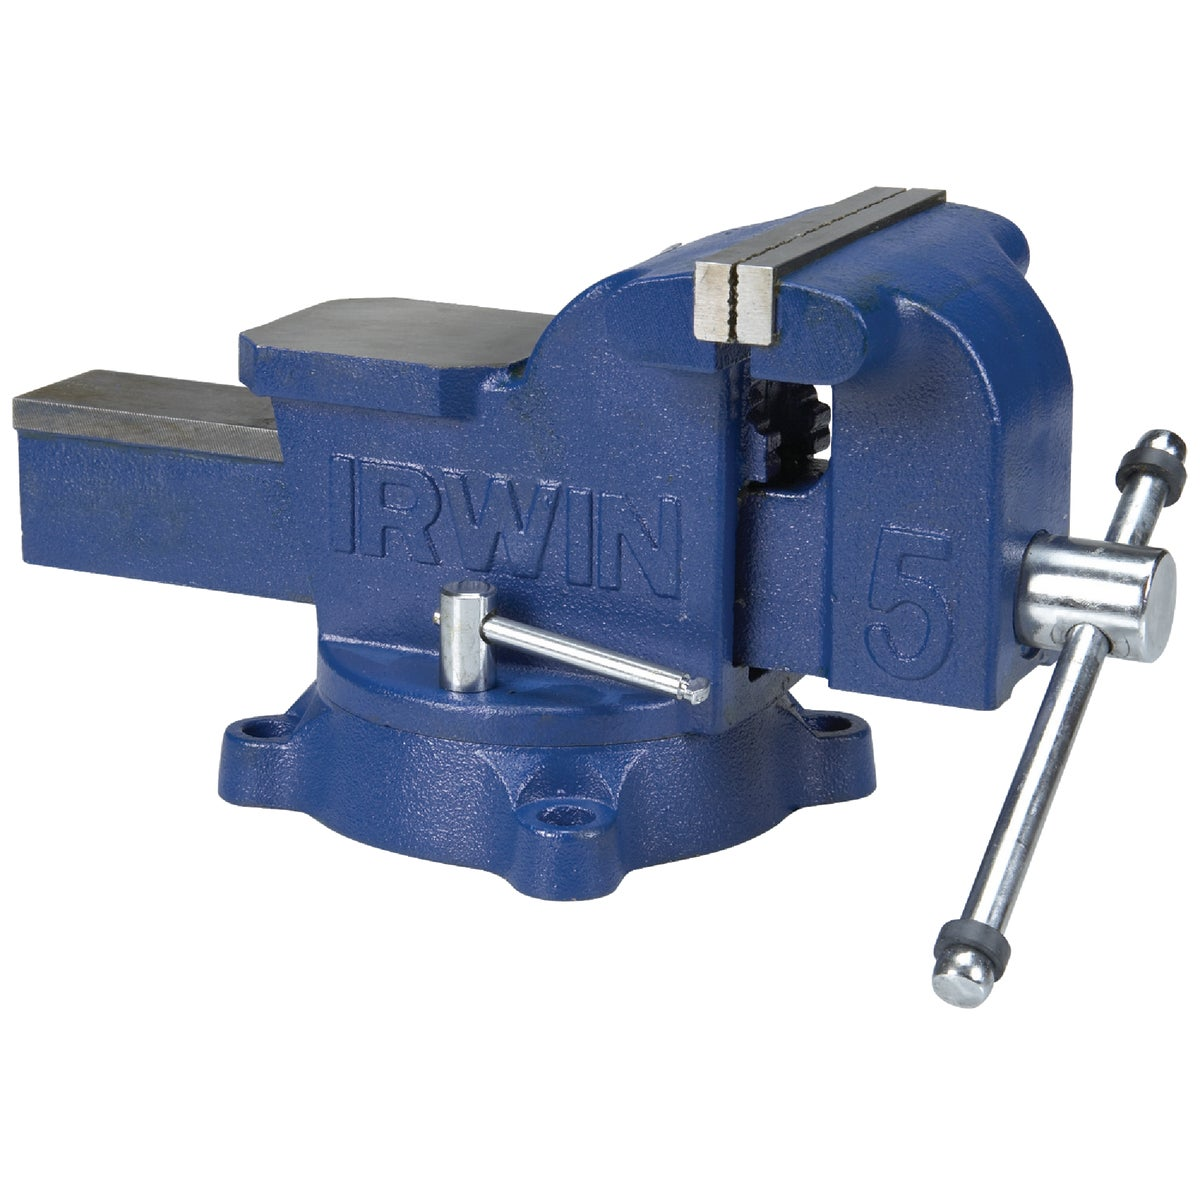 "5"" WORKSHOP BENCH VISE"